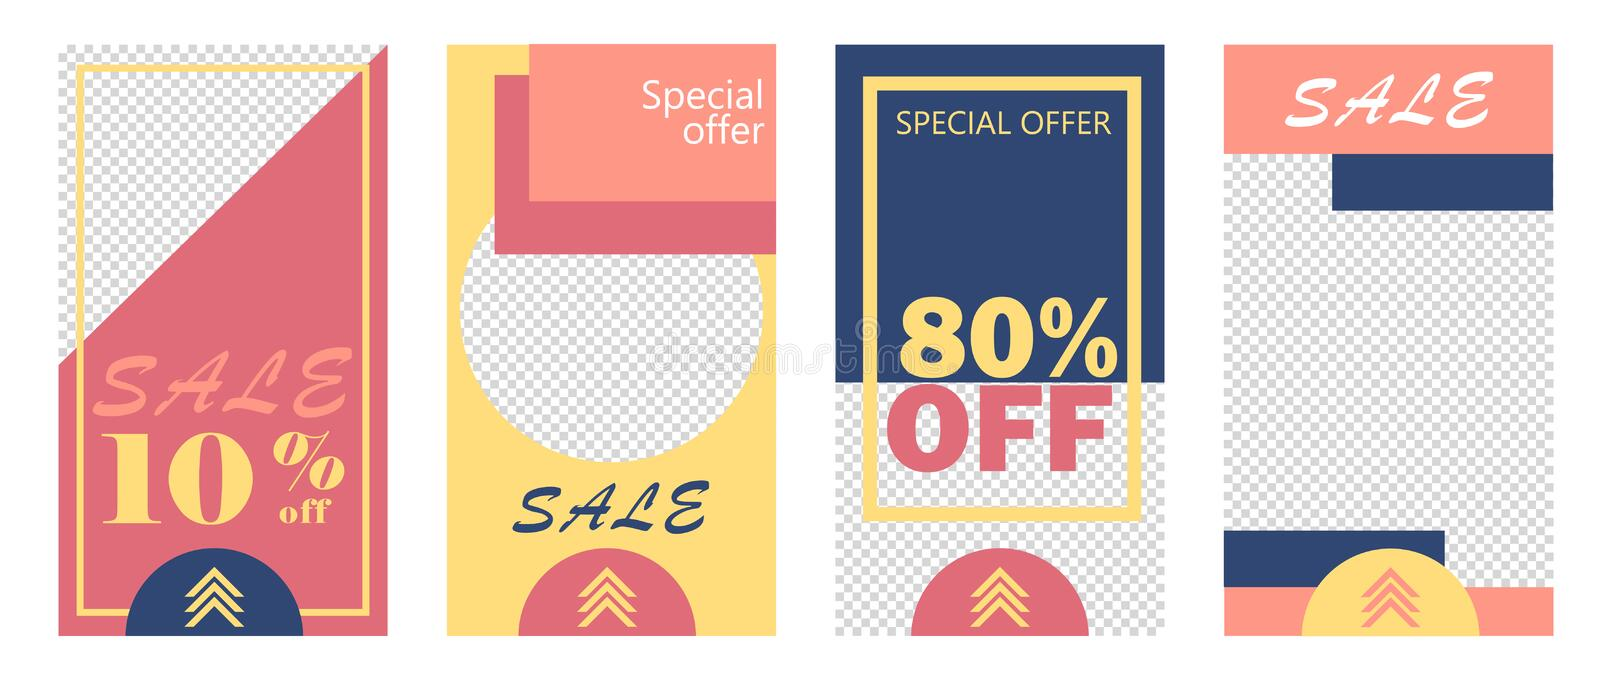 Set of Instagram stories sale banner background, instagram template photo royalty free illustration